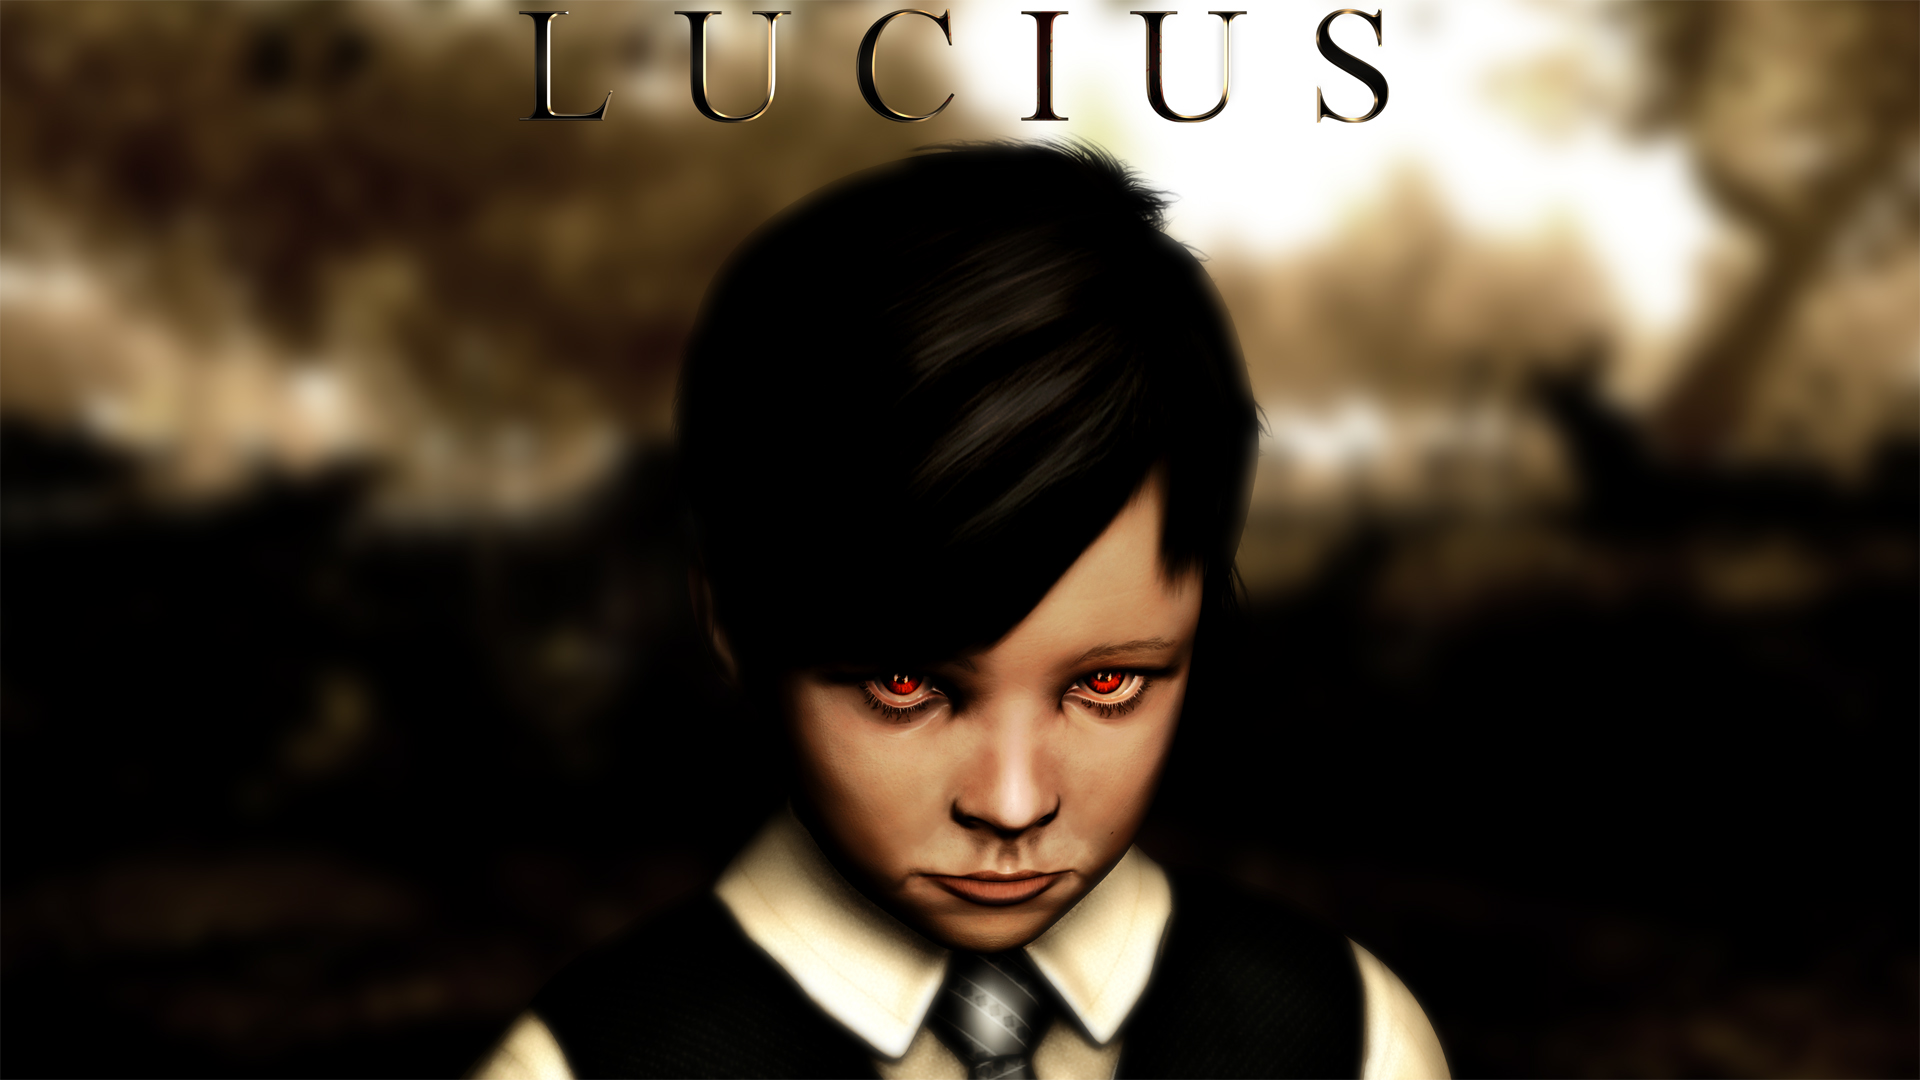 Lucius telecharger gratuit de PC et Torrent